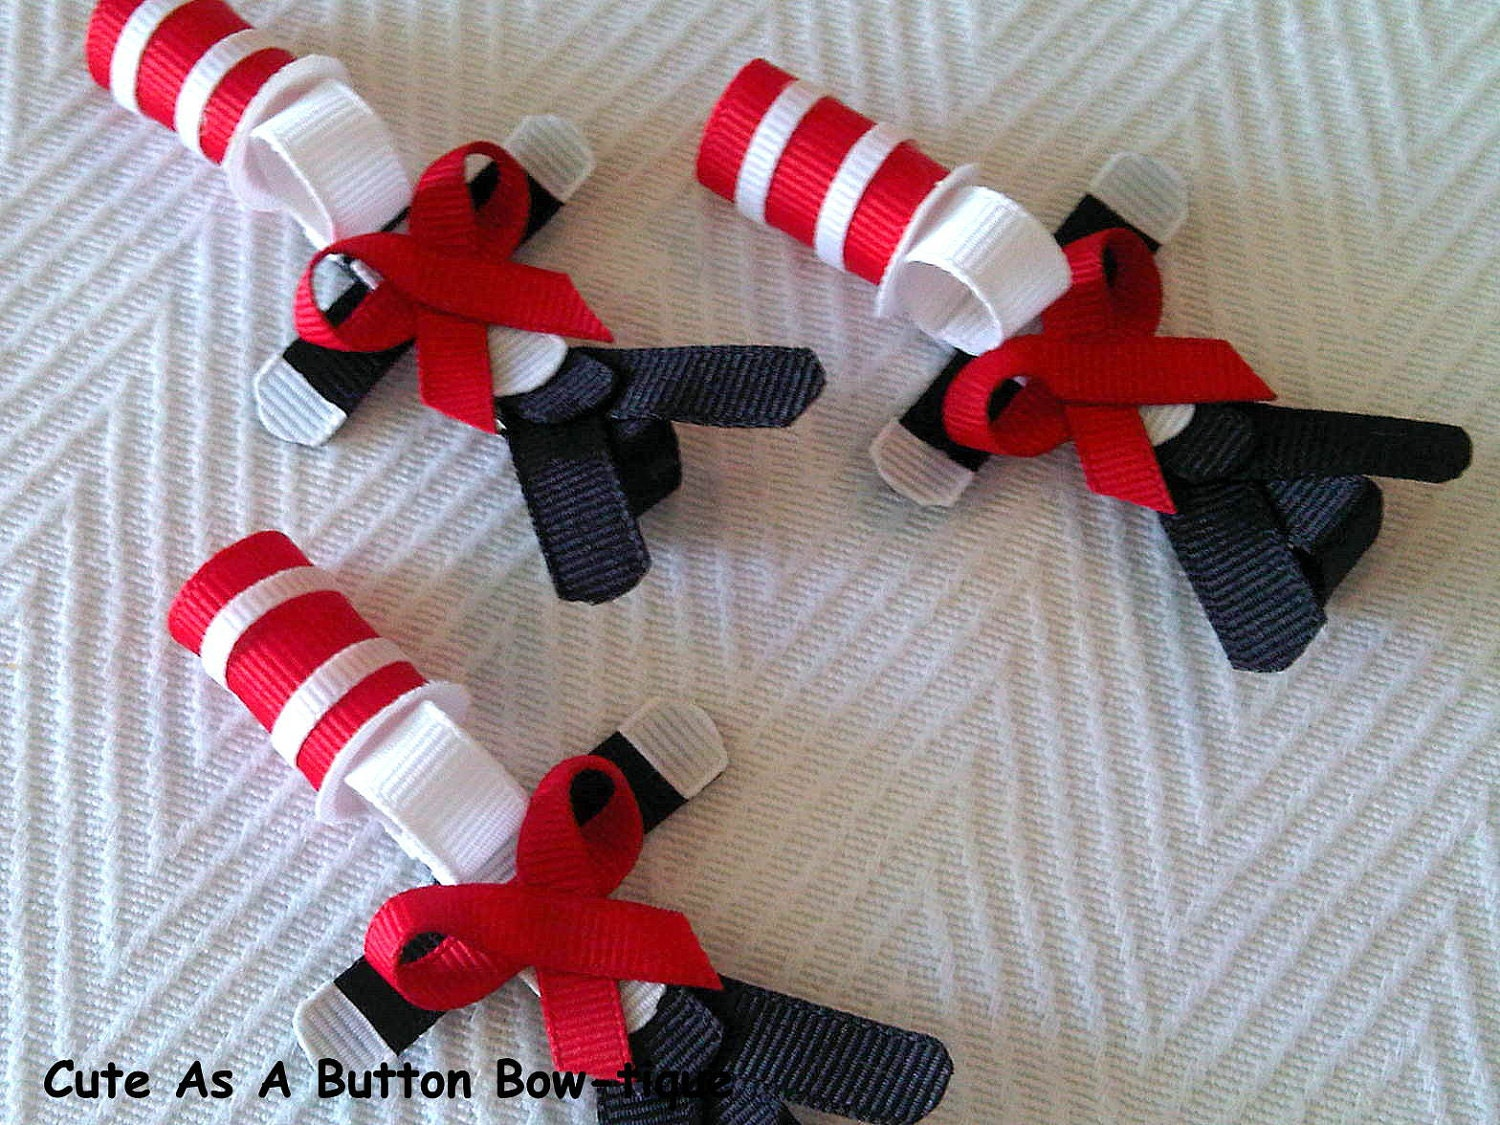 Cat In The Hat Ribbon Sculpture Tutorial